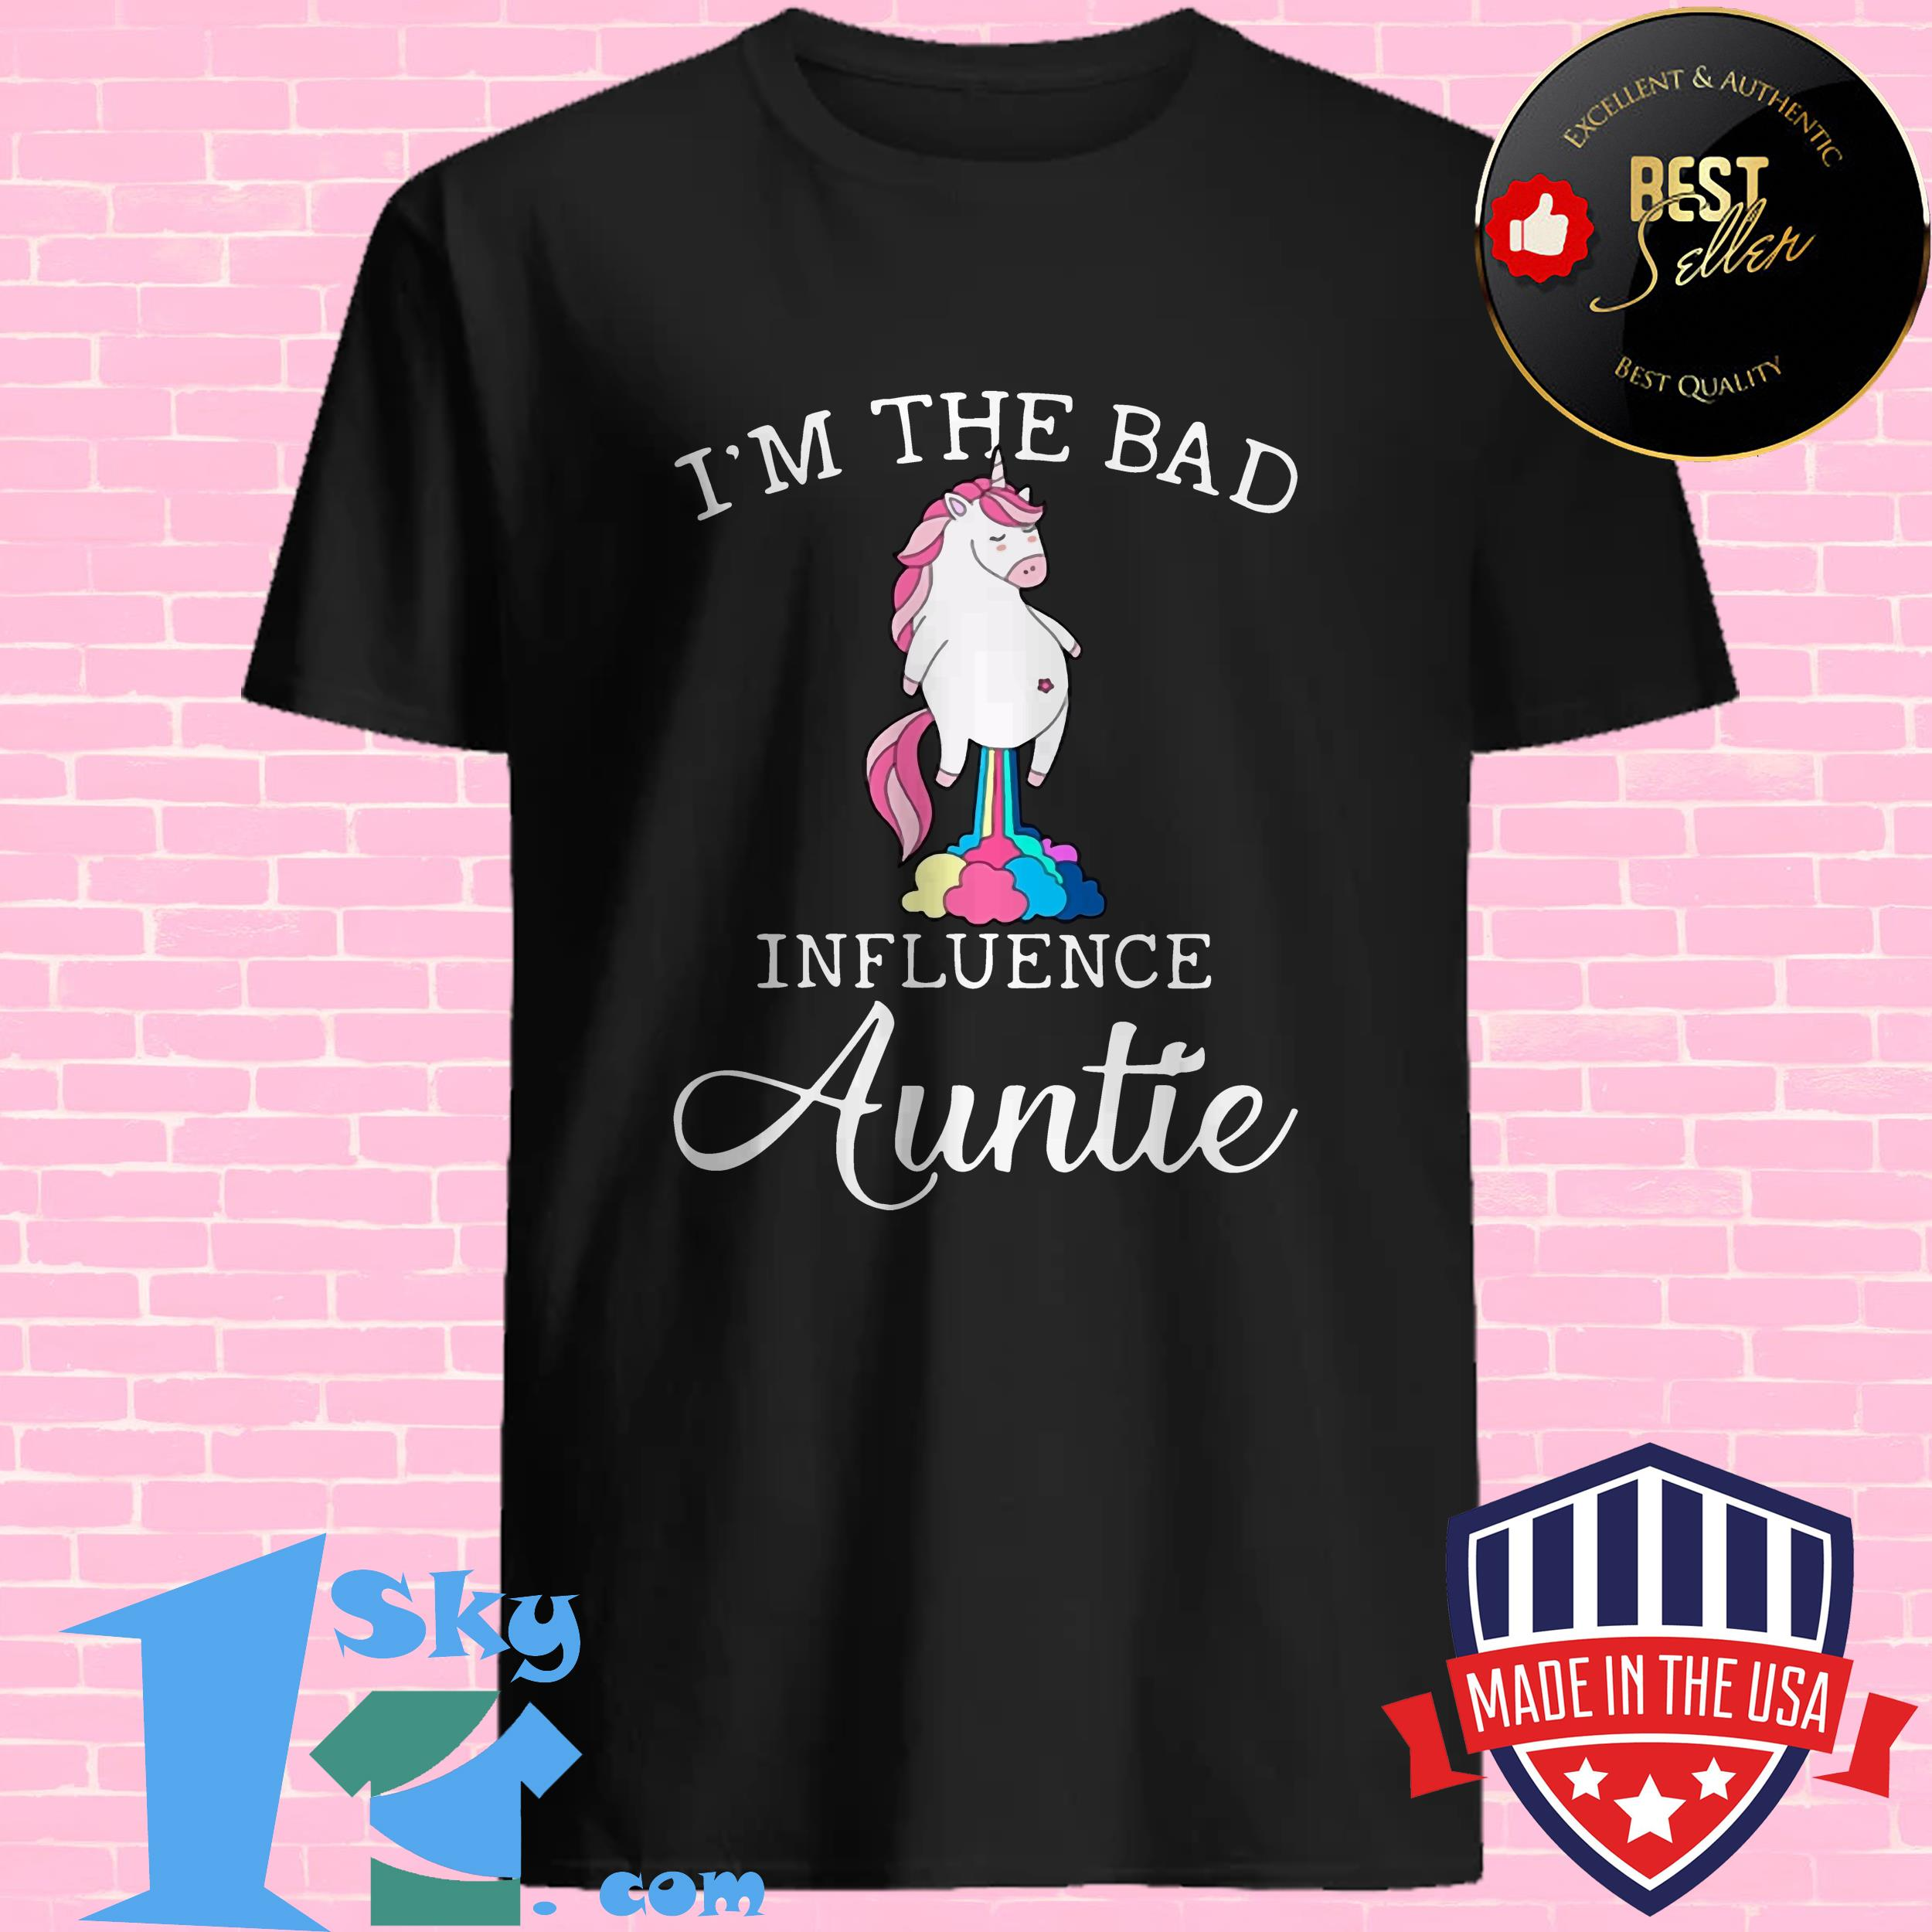 im the bad influence auntie fart unicorn shirt - I'm The Bad Influence Auntie Fart Unicorn shirt